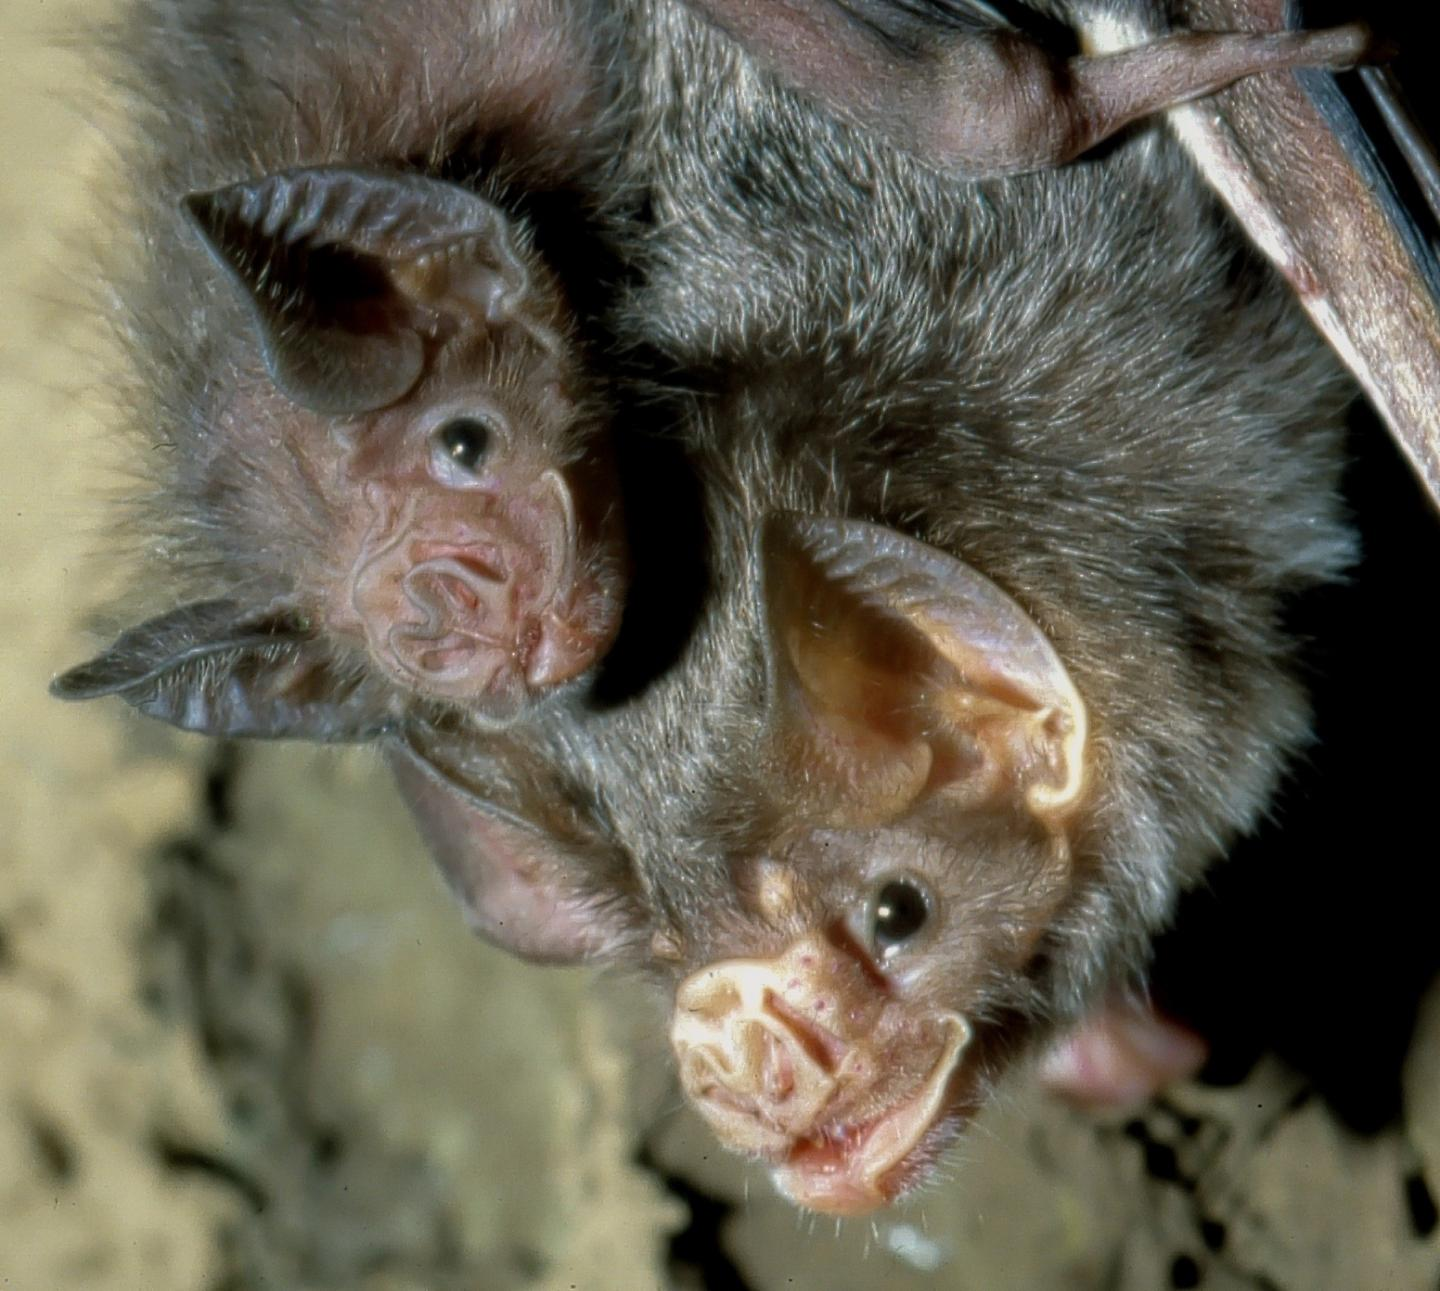 A common vampire bat mother with young. Credit: Uwe Schmidt